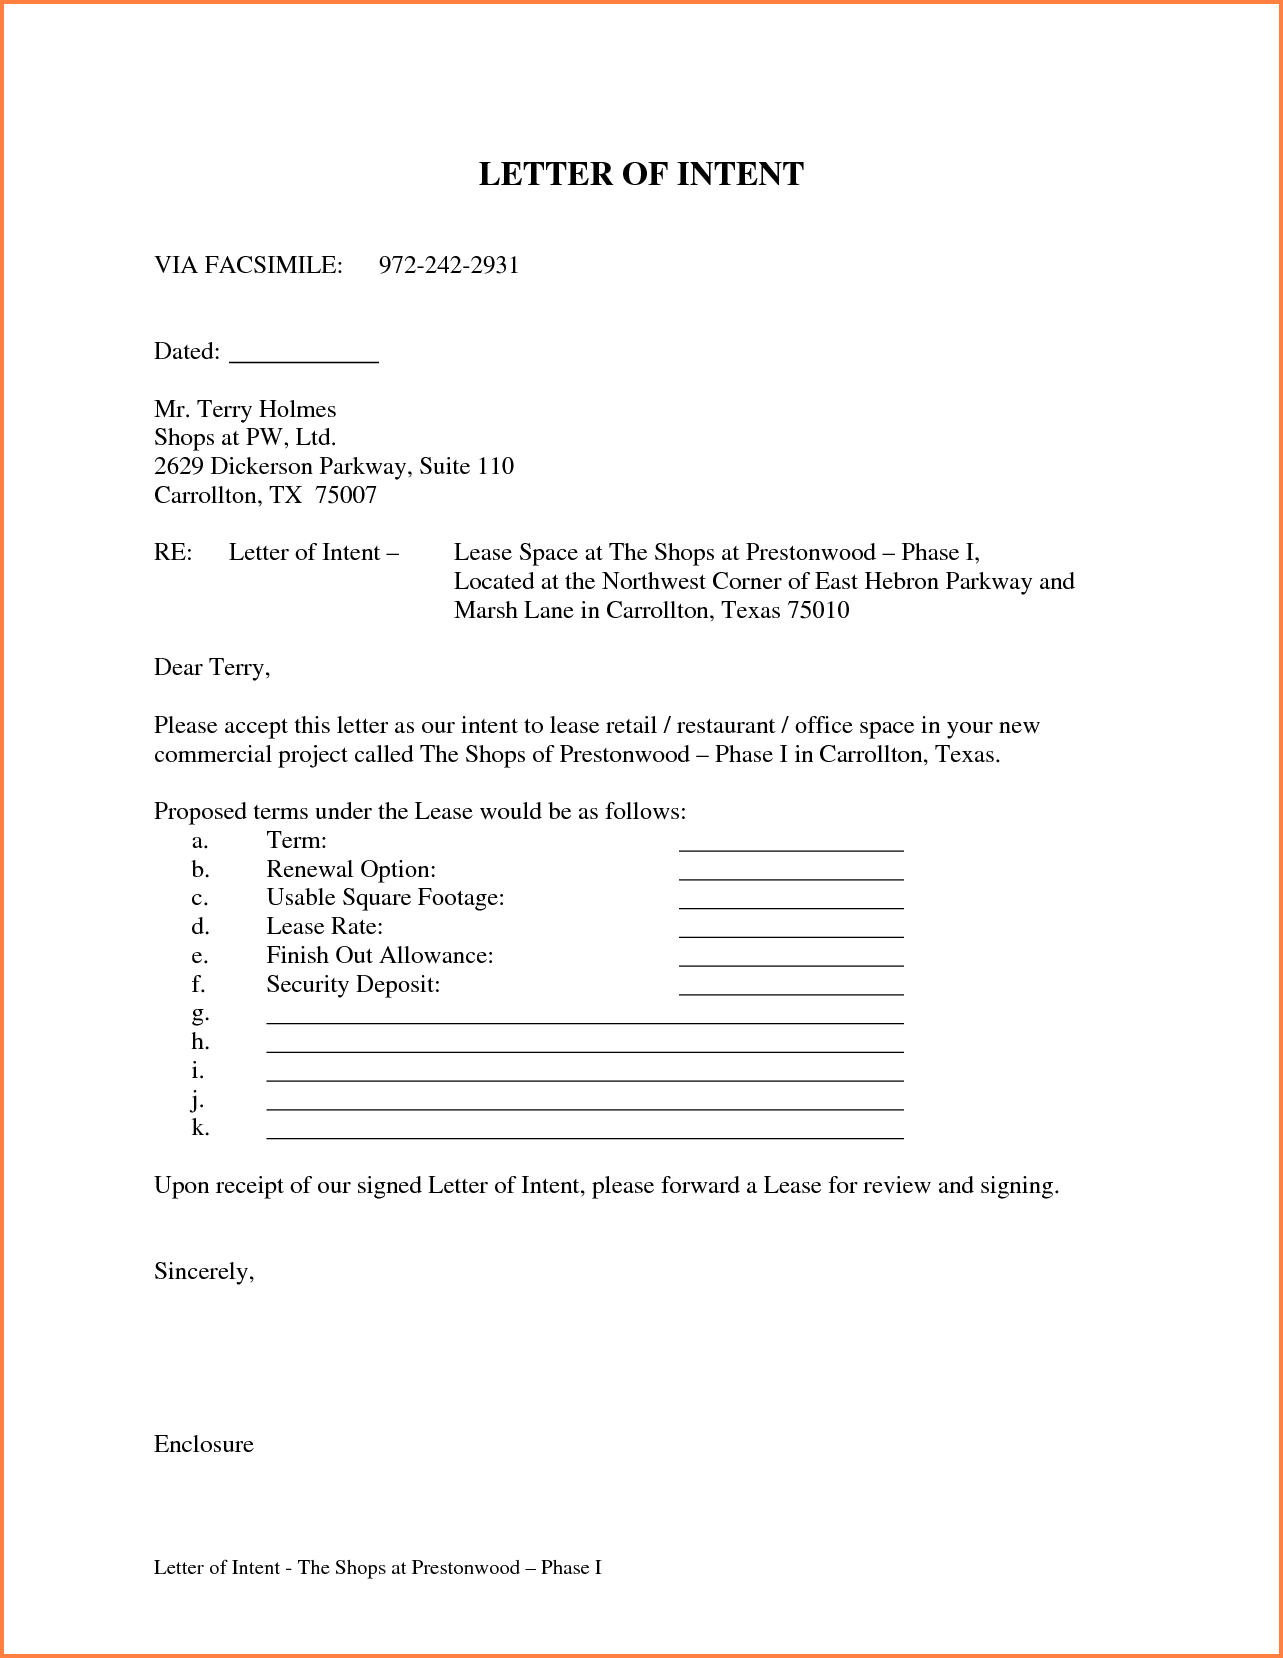 Letter Of Intent to Lease Template - Letter Intent for Lease Template Awesome Letter Intent for